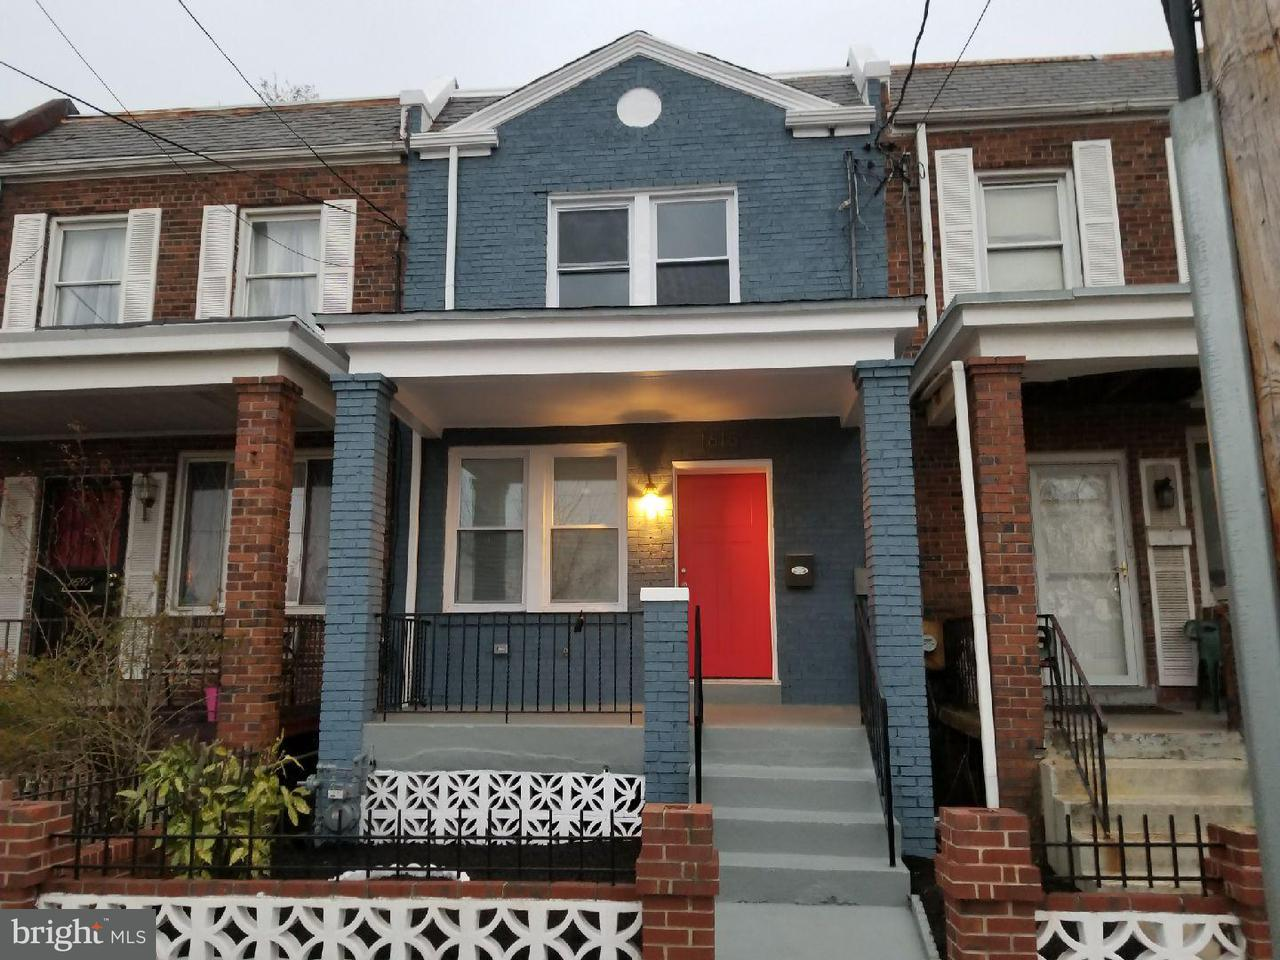 Single Family Home for Sale at 1615 Fairlawn Ave Se 1615 Fairlawn Ave Se Washington, District Of Columbia 20020 United States